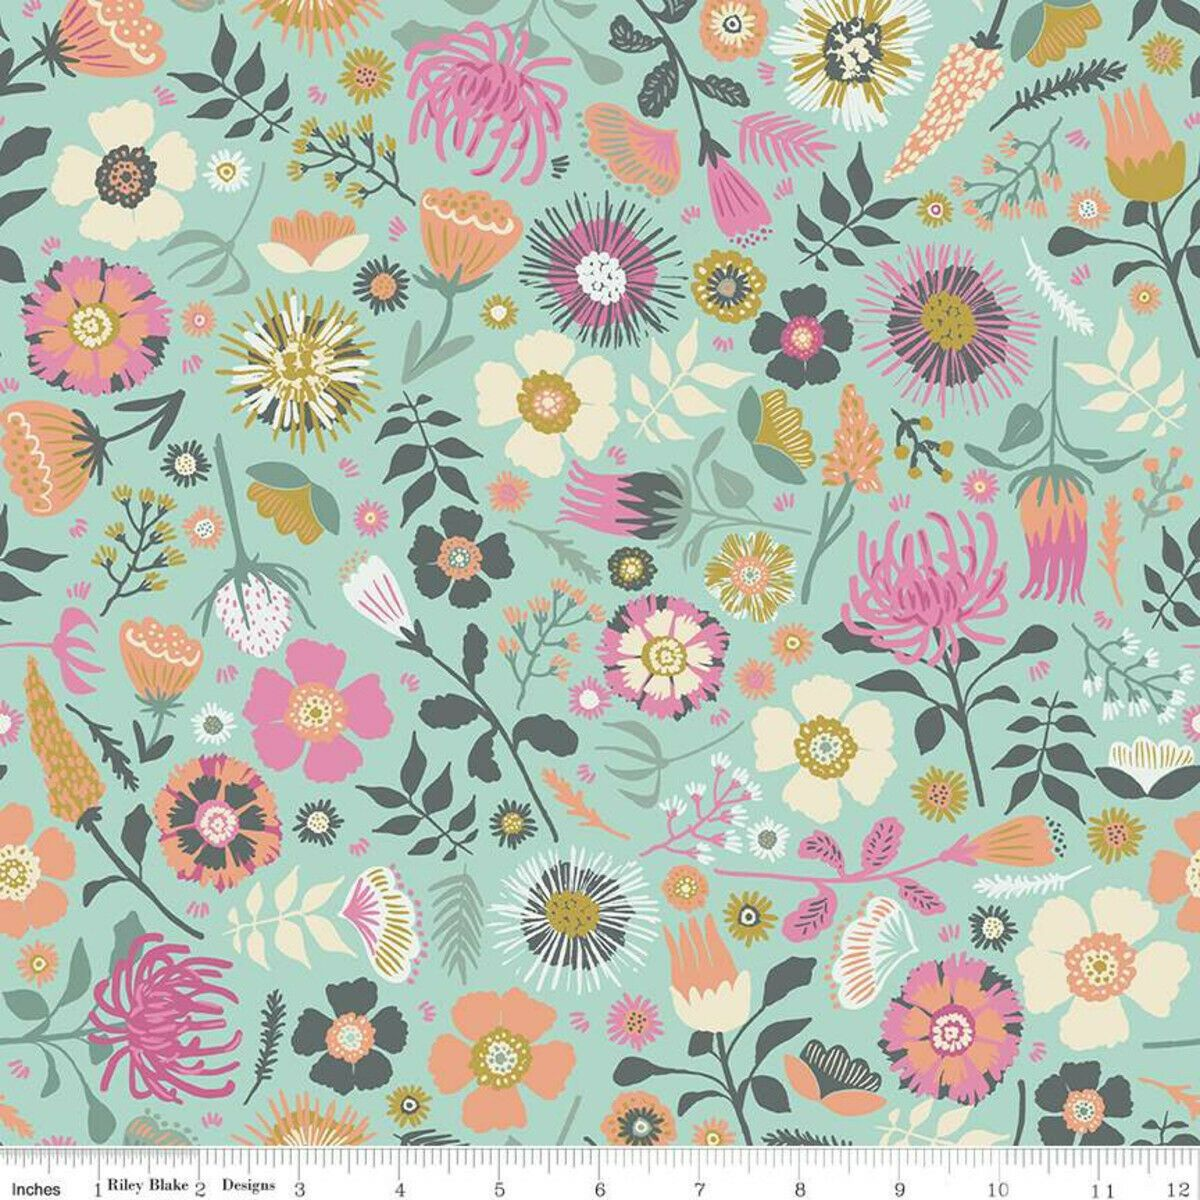 Meadow Lane Main Fabric Mint by Riley Blake SBY